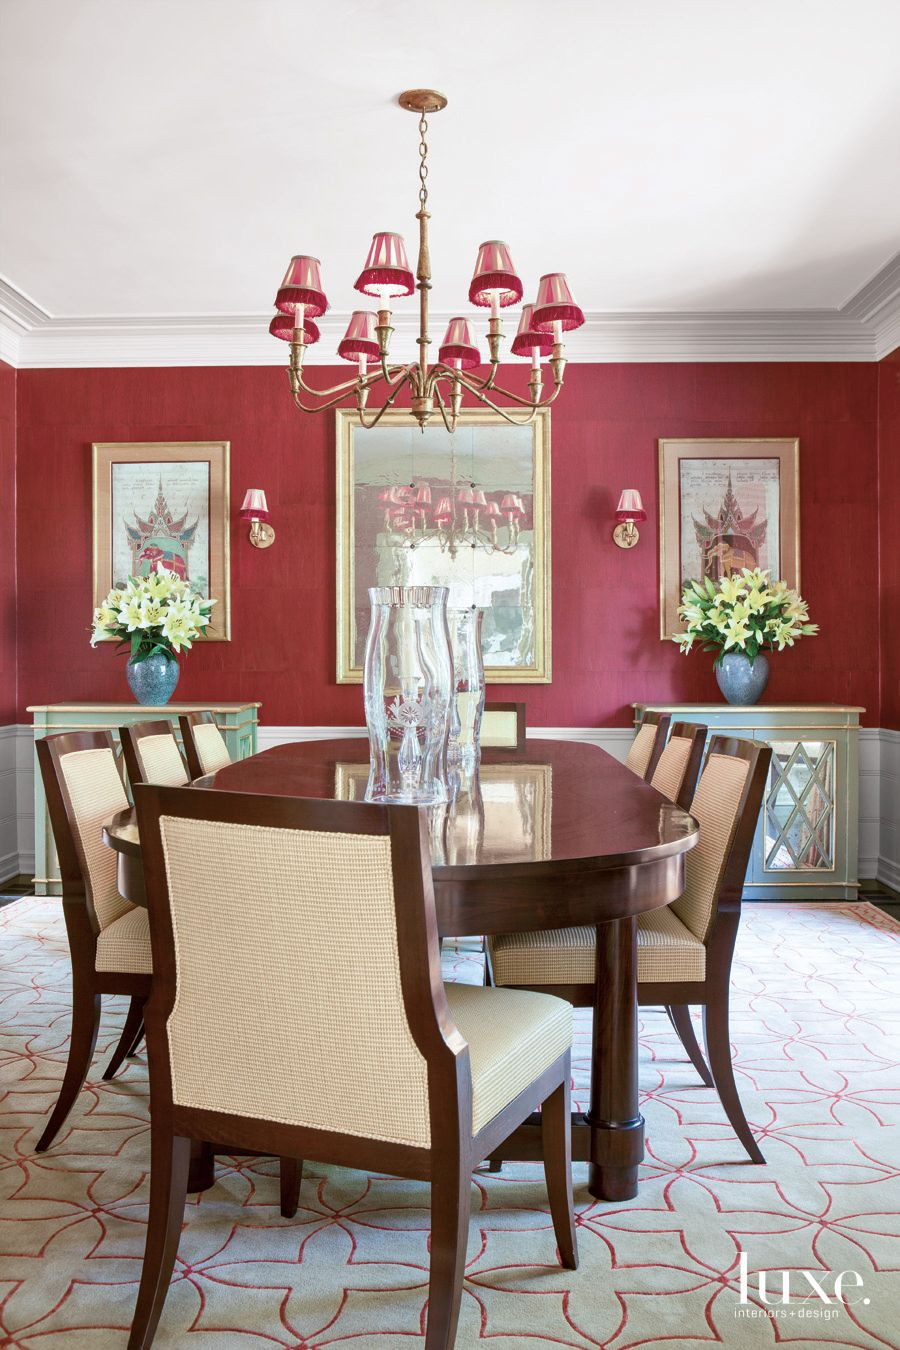 Traditional Red Dining Room with Thai Artwork